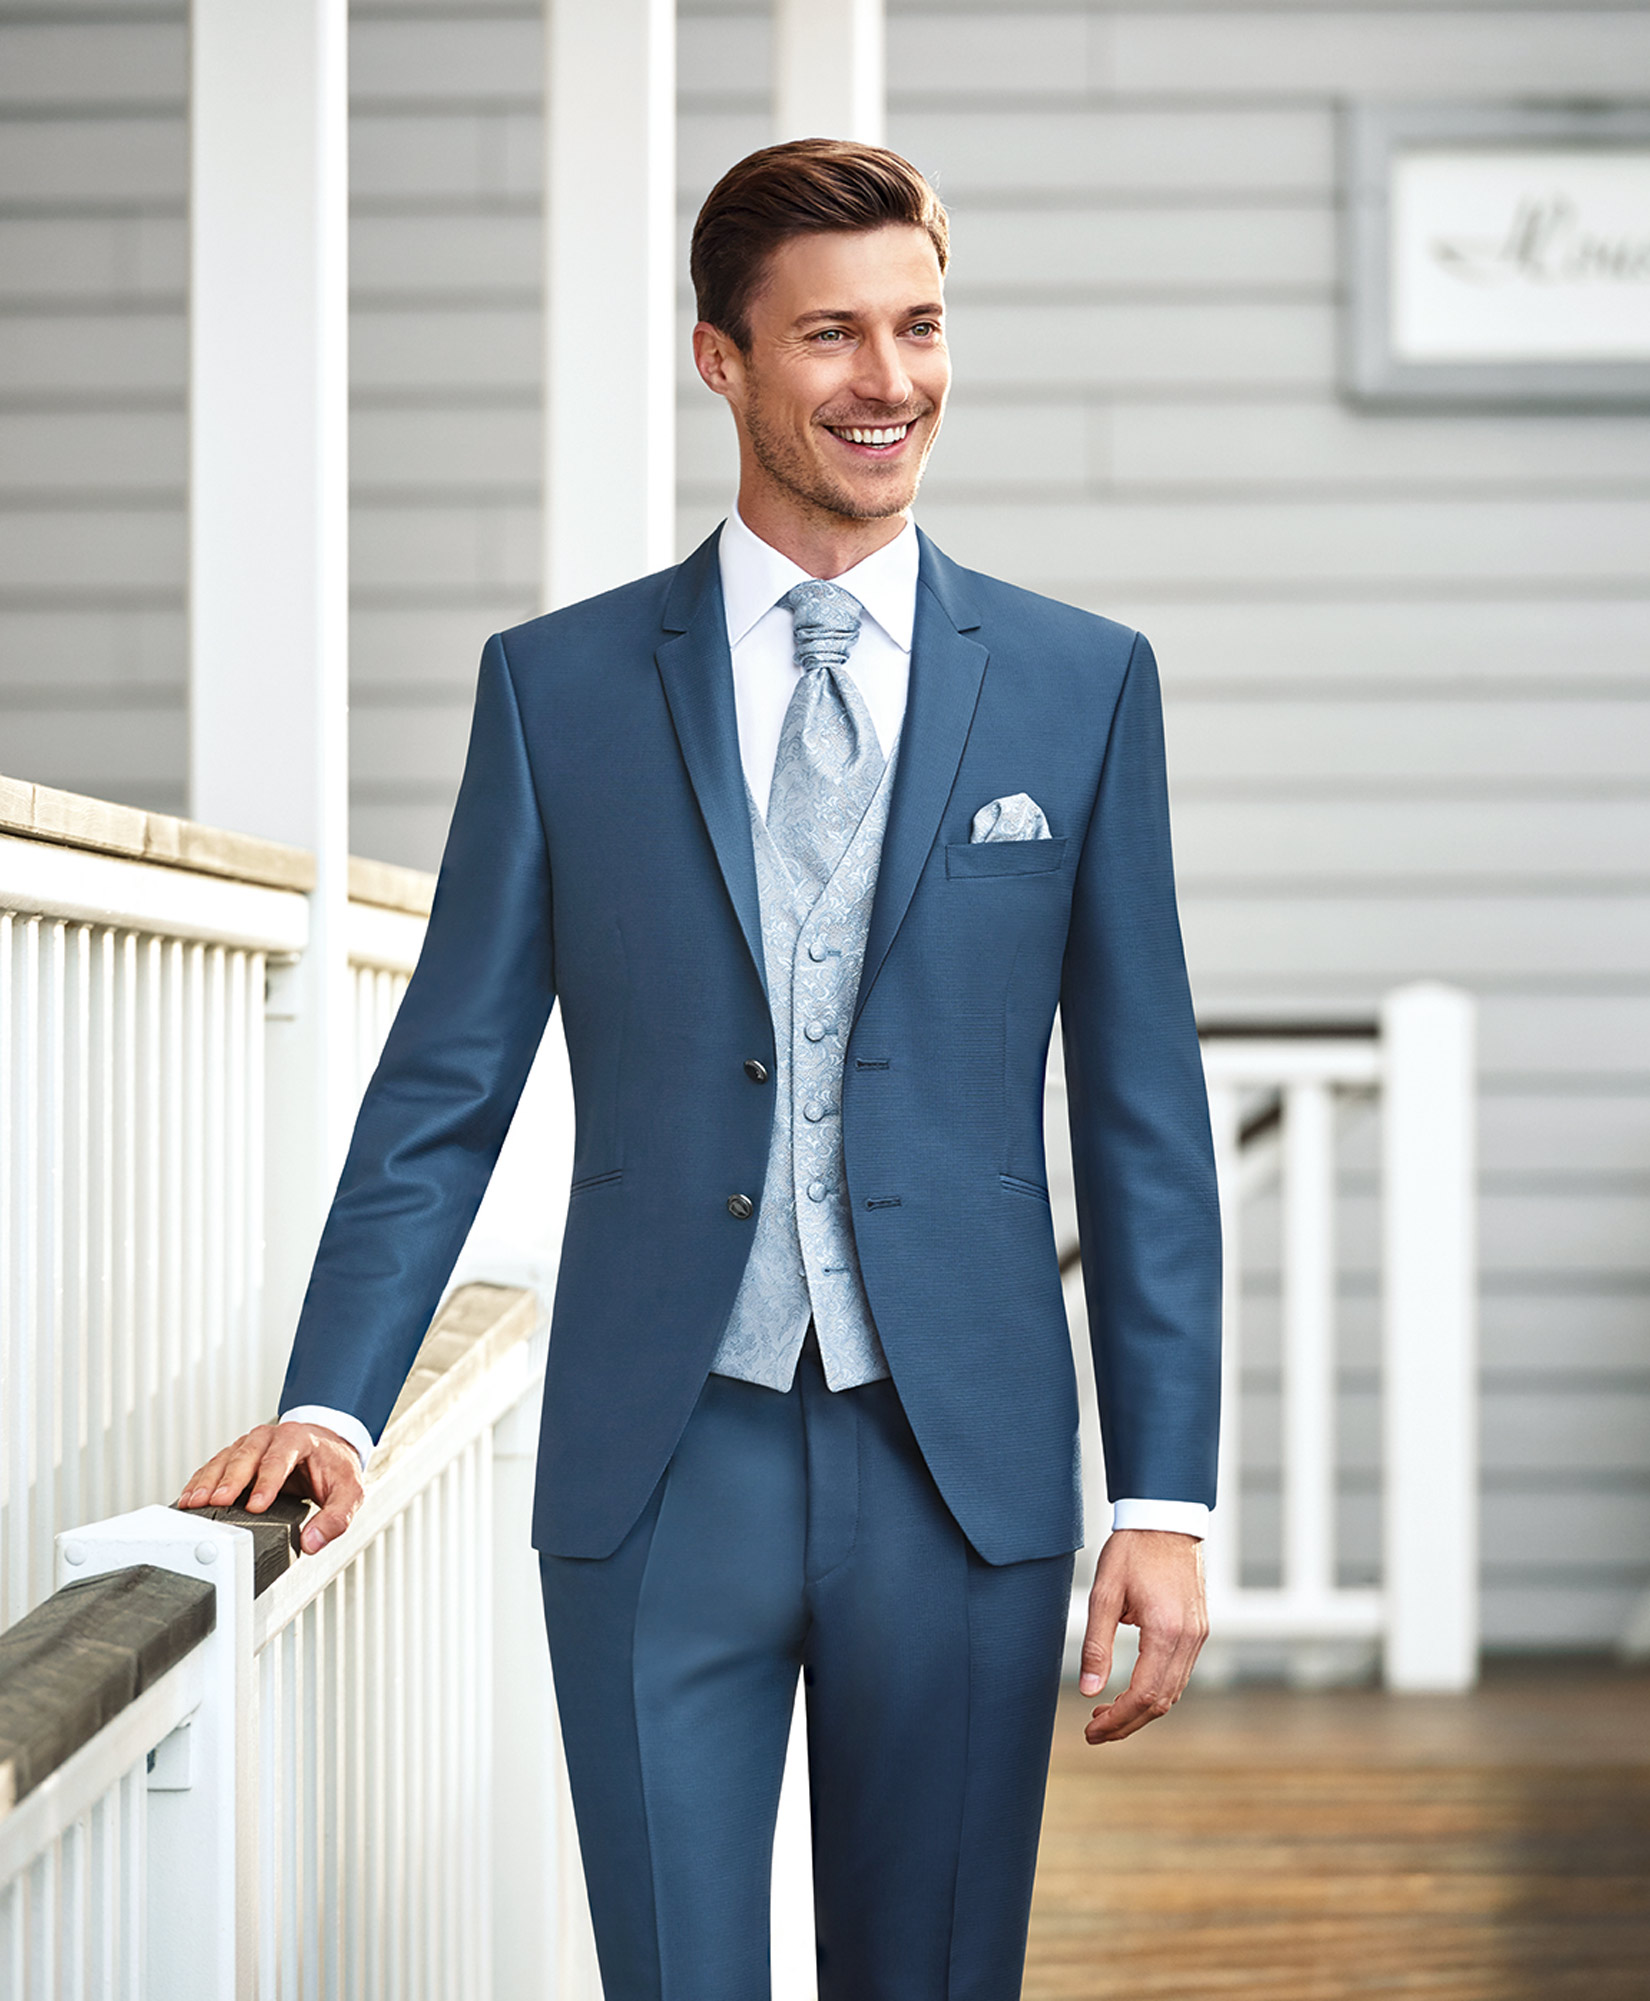 After Six Wedding Suits 2018 Archives - Tom Murphy\'s Formal and Menswear